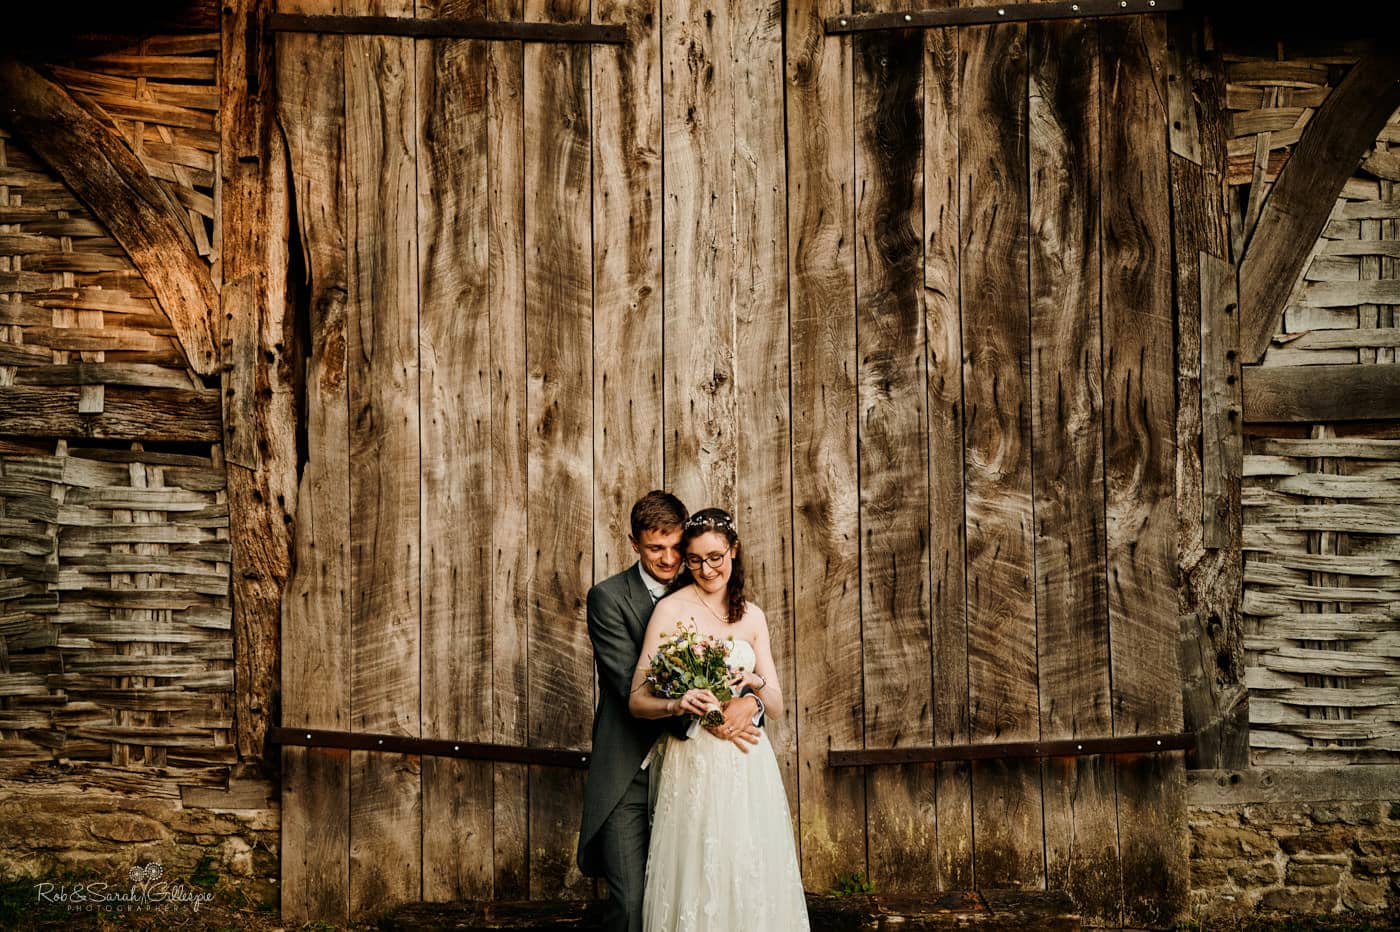 Relaxed bride and groom with old barn doors. Avoncroft Museum wedding photographers Rob & Sarah Gillespie